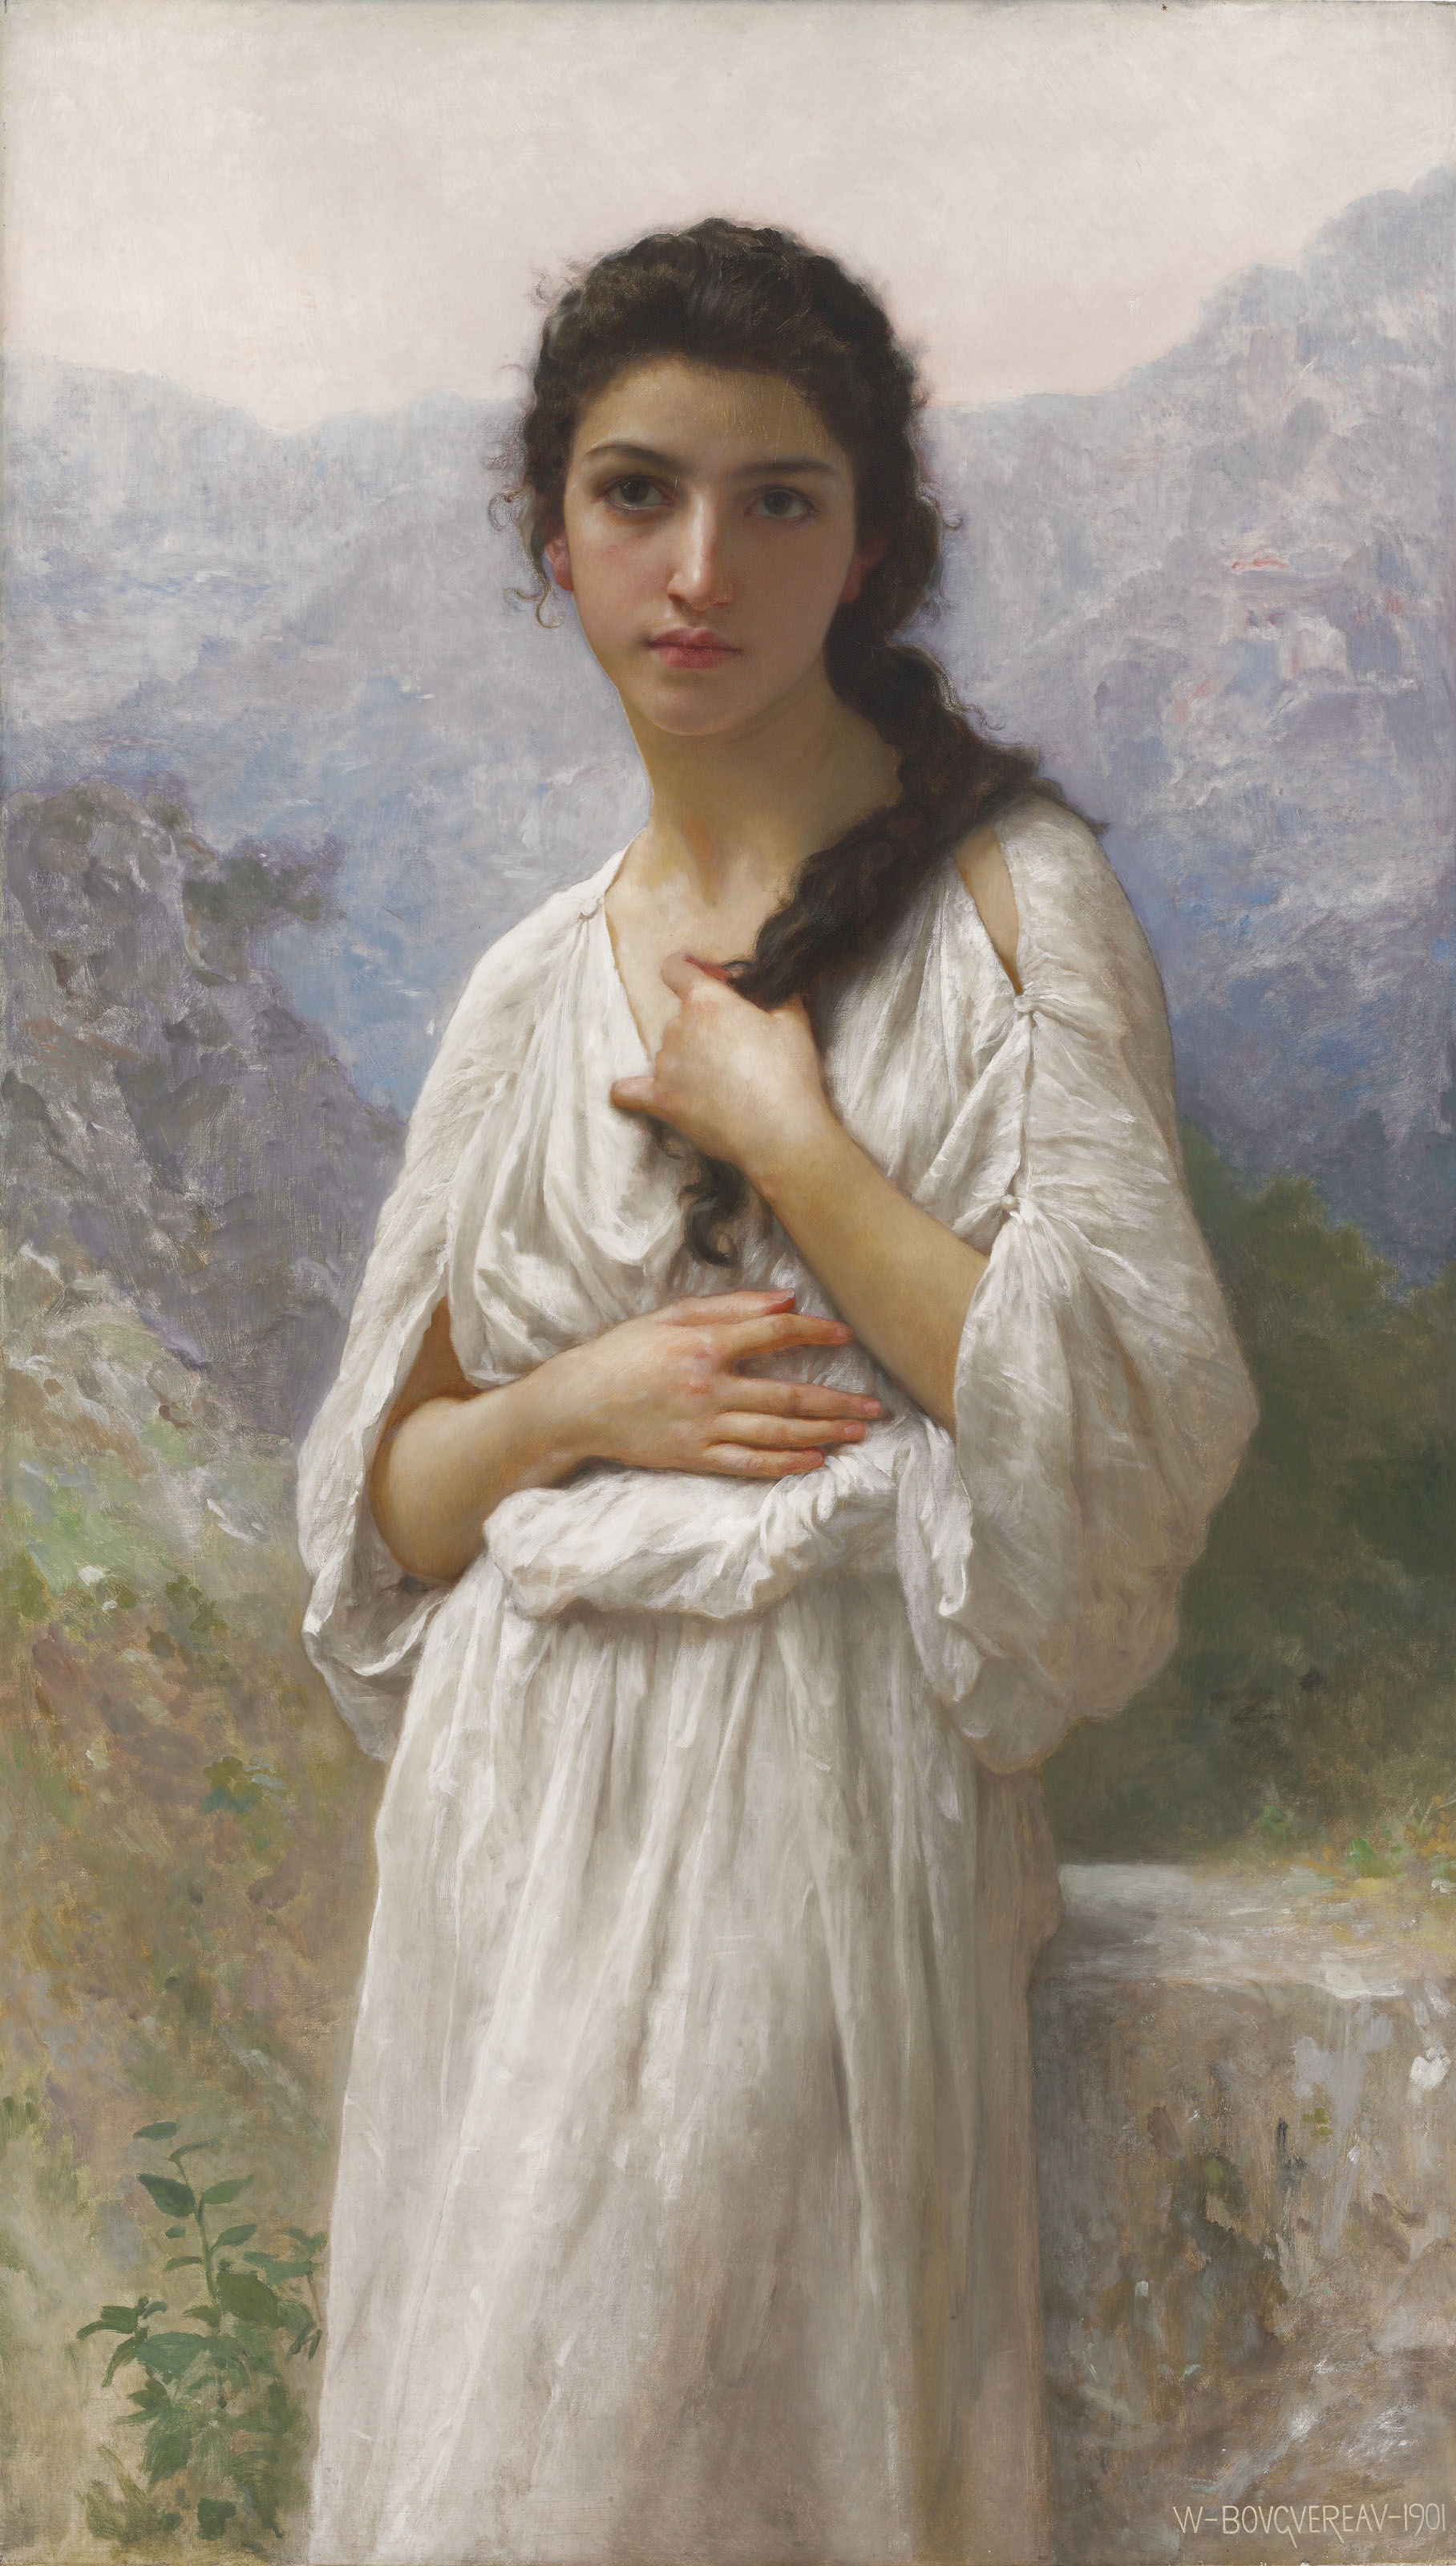 William Adolphe Bouguereau (Fr